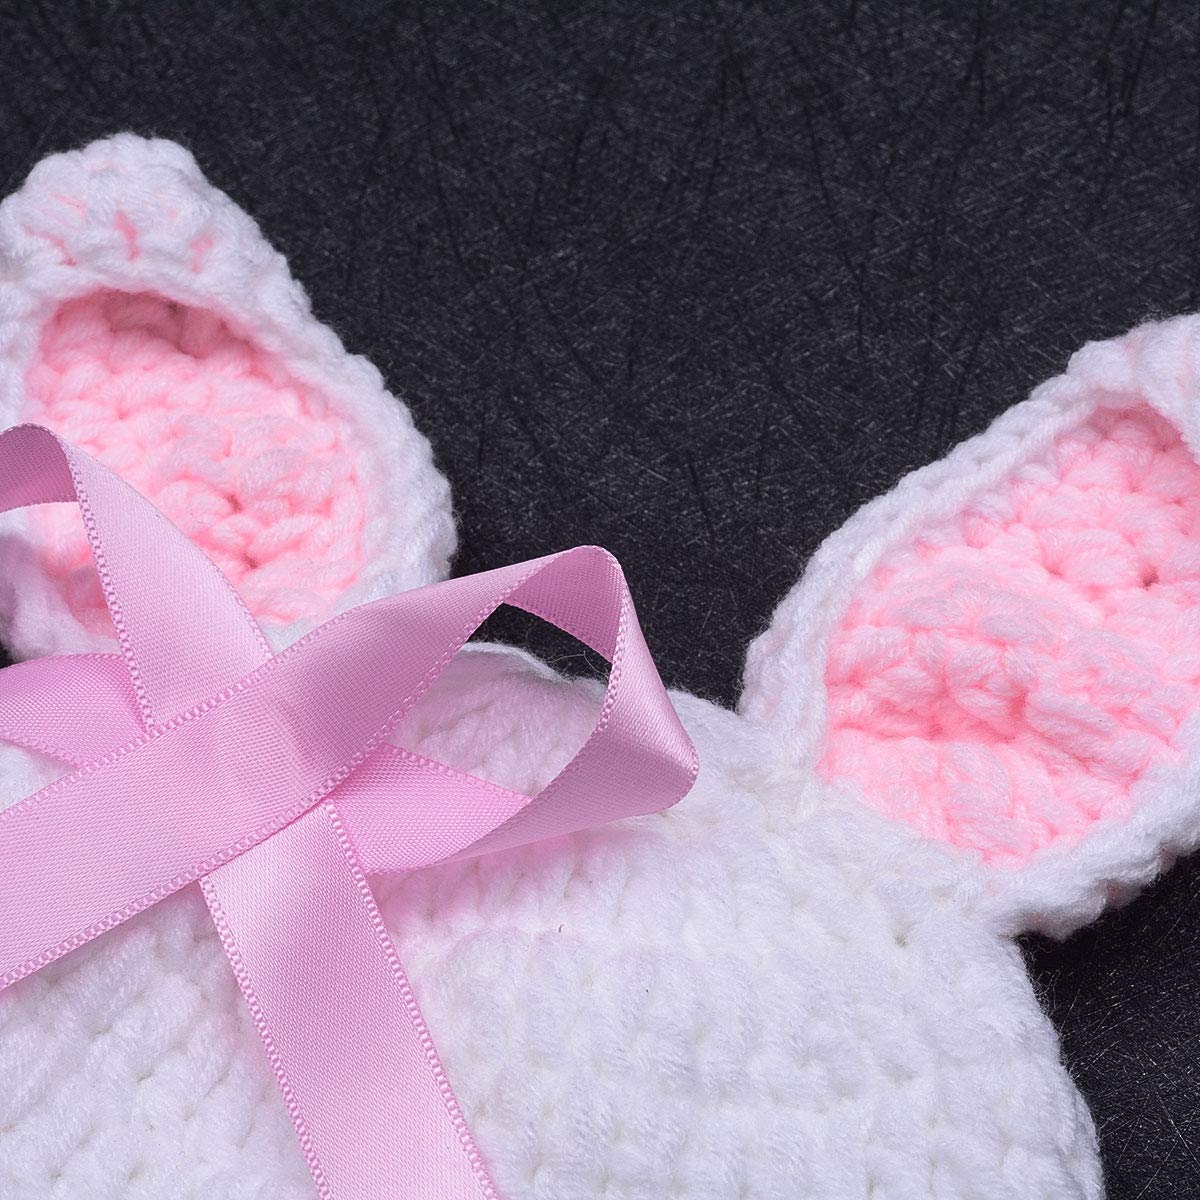 ISOCUTE Newborn Photography Props Baby Girl Easter Bunny Crochet Knitted Rabbit Set by ISOCUTE (Image #4)